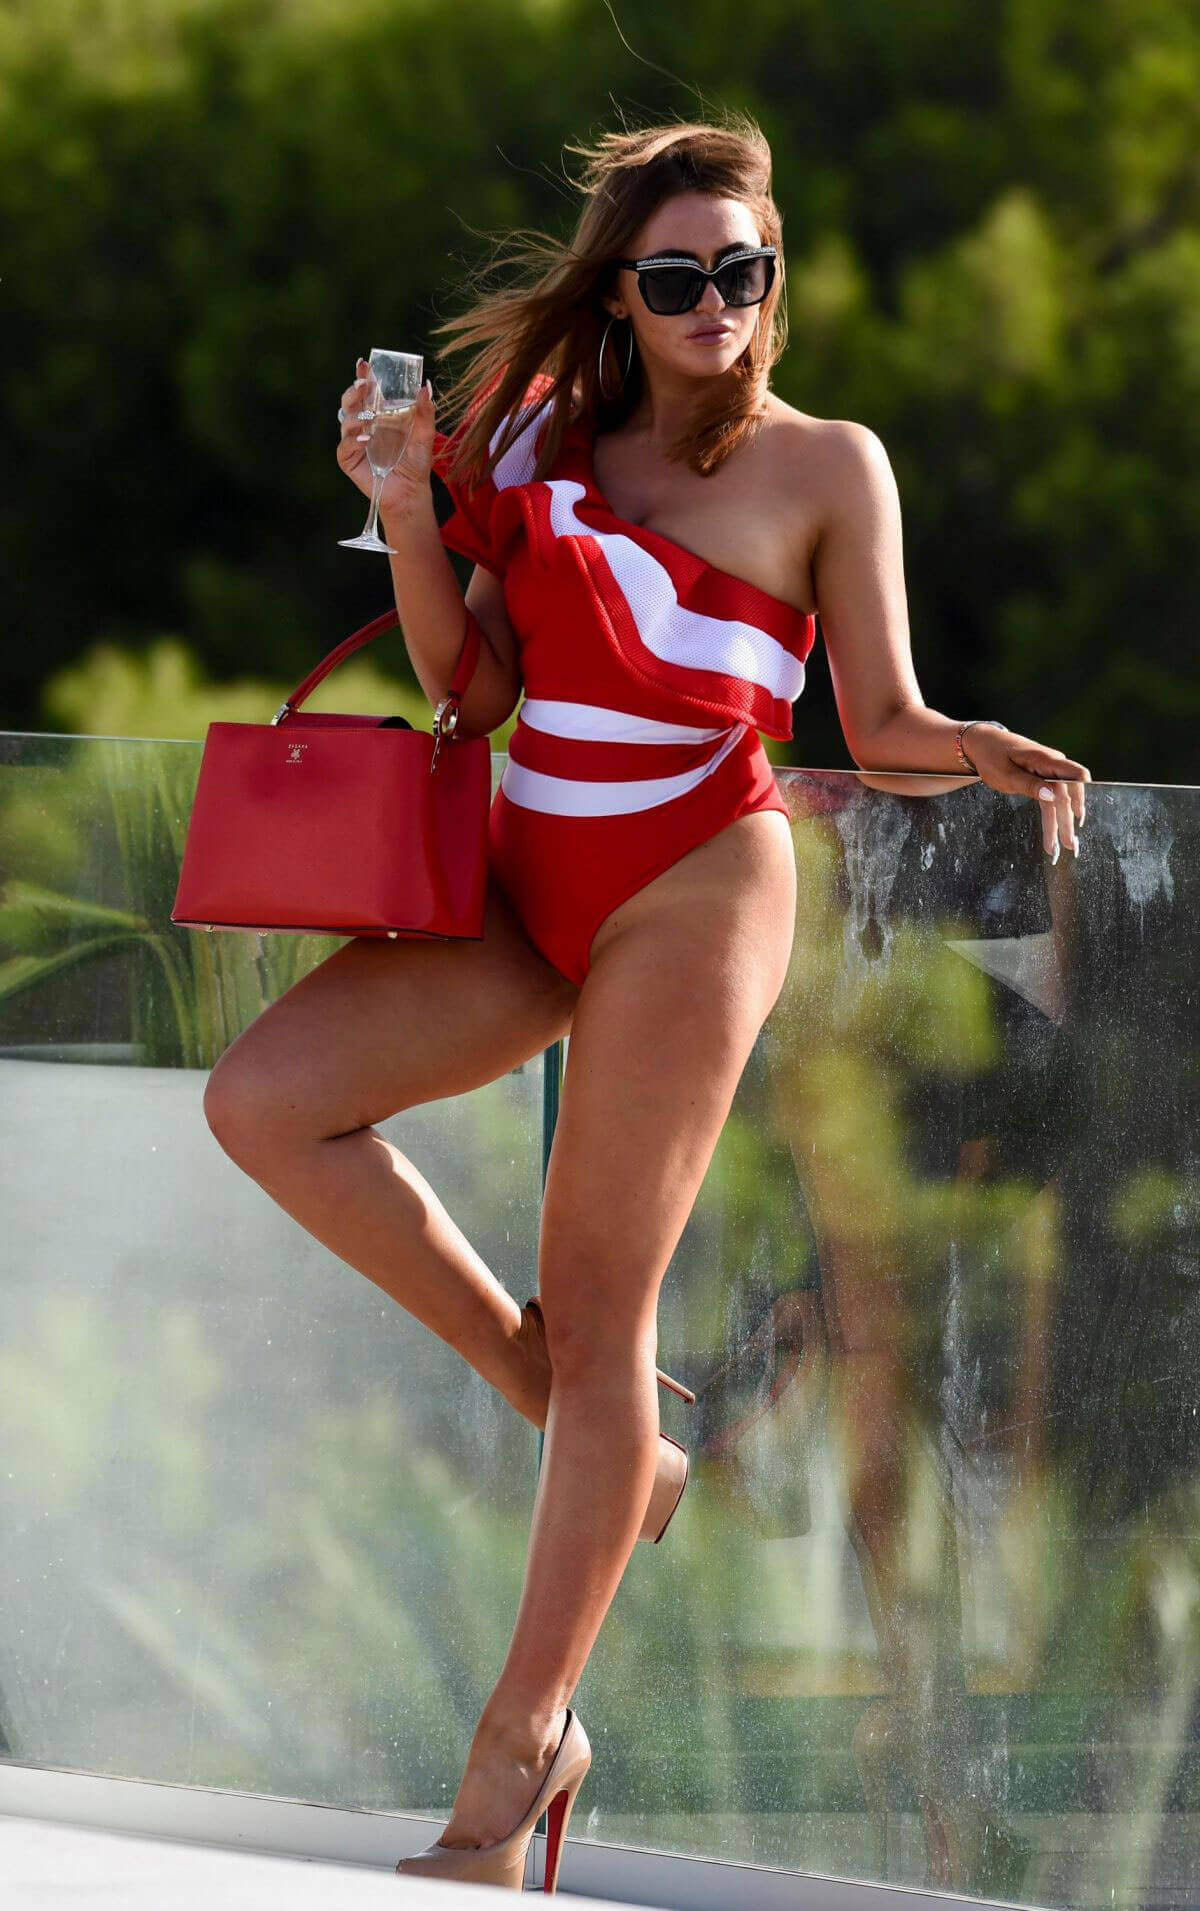 Charlotte Dawson flashes her bum in Swimsuit on The Set of A Photoshoot in Tenerife